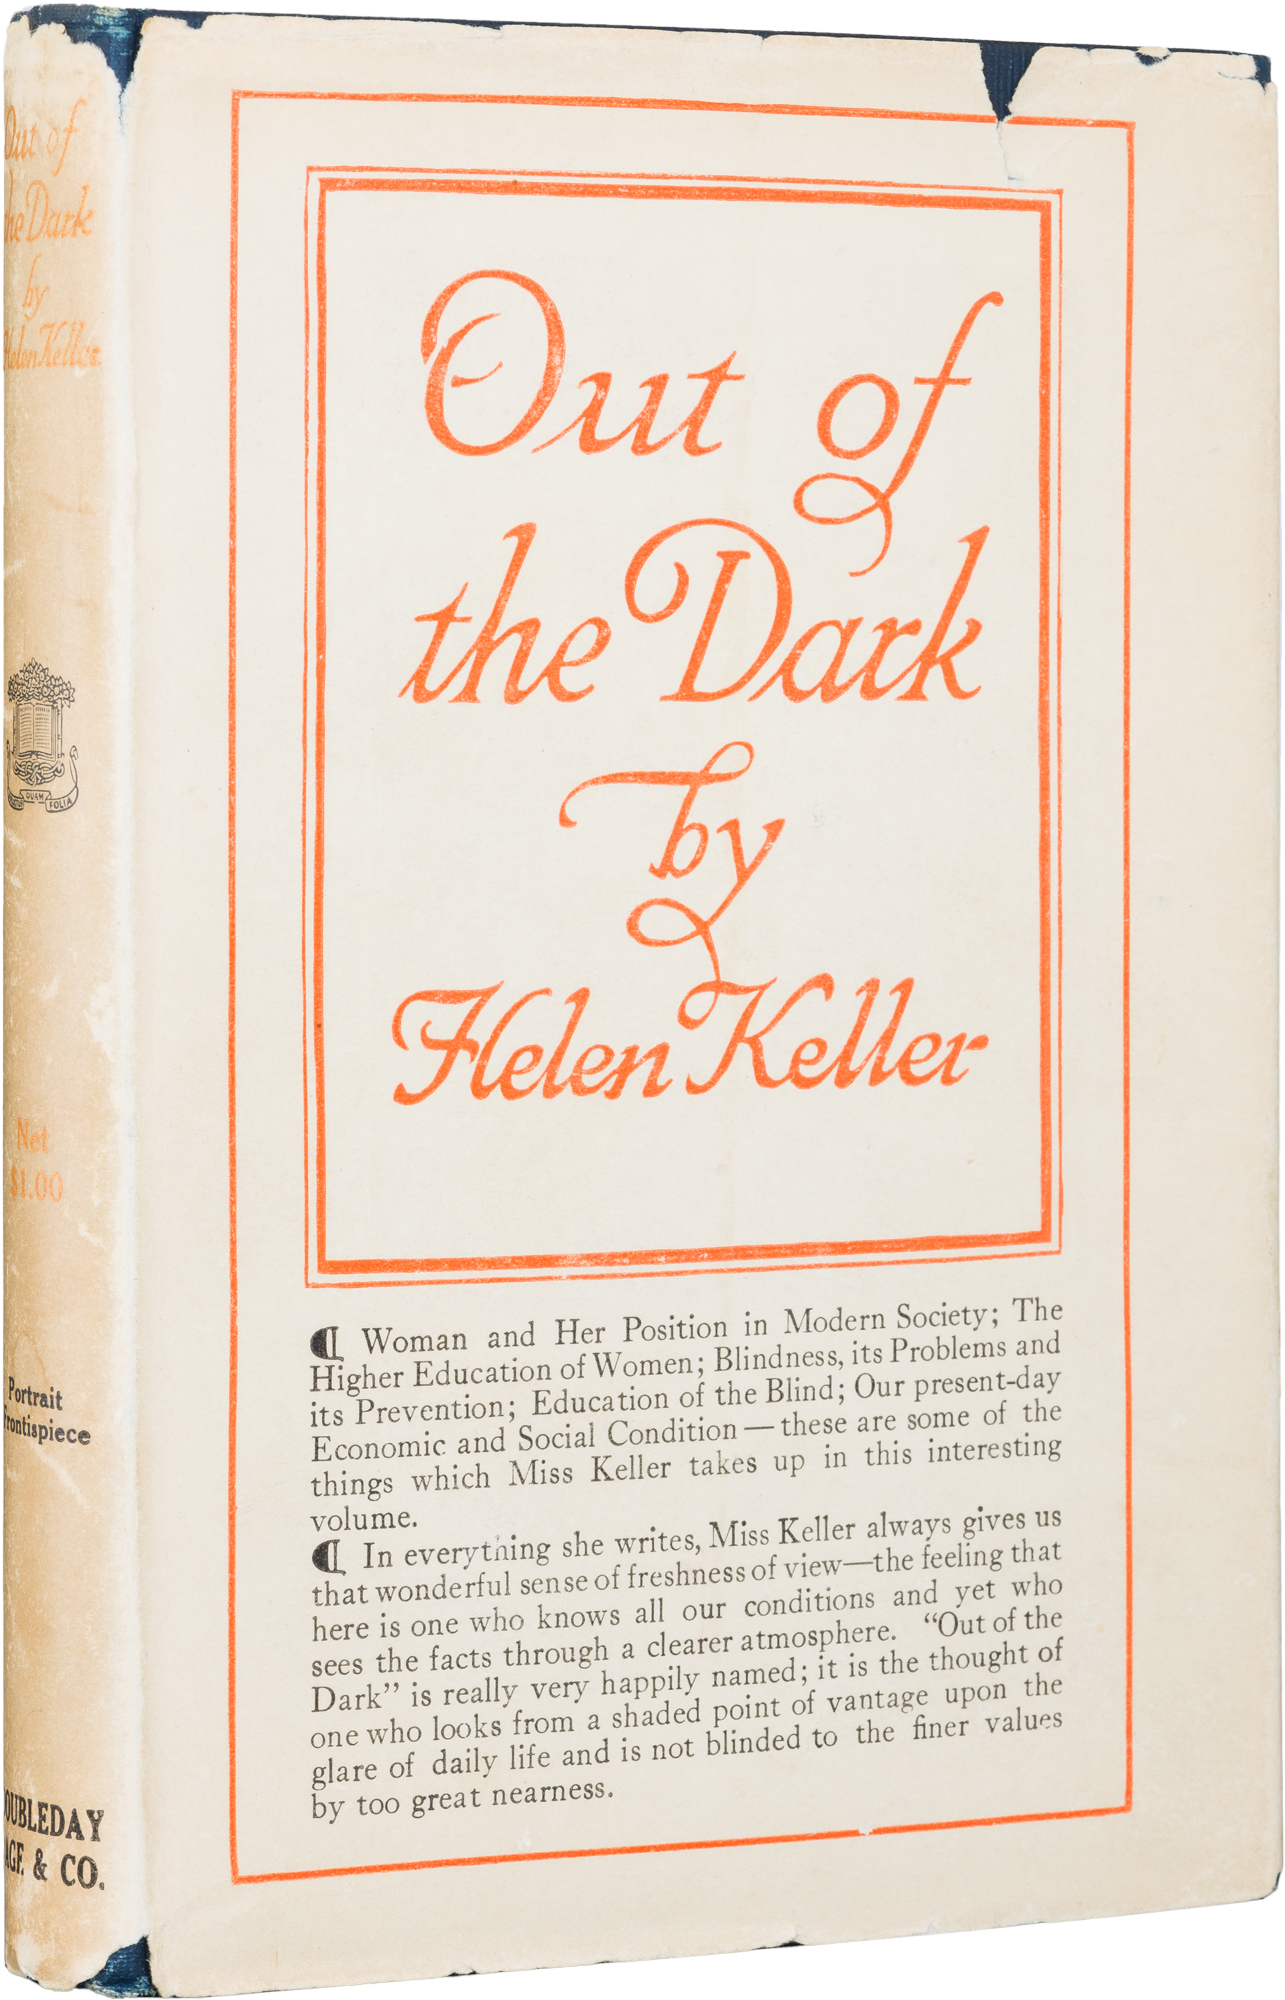 small essay helen keller Small essay on helen keller in hindi, read this full essay on helen keller early lifehelen adams keller was born in a small town in northern alabama to kate adams.